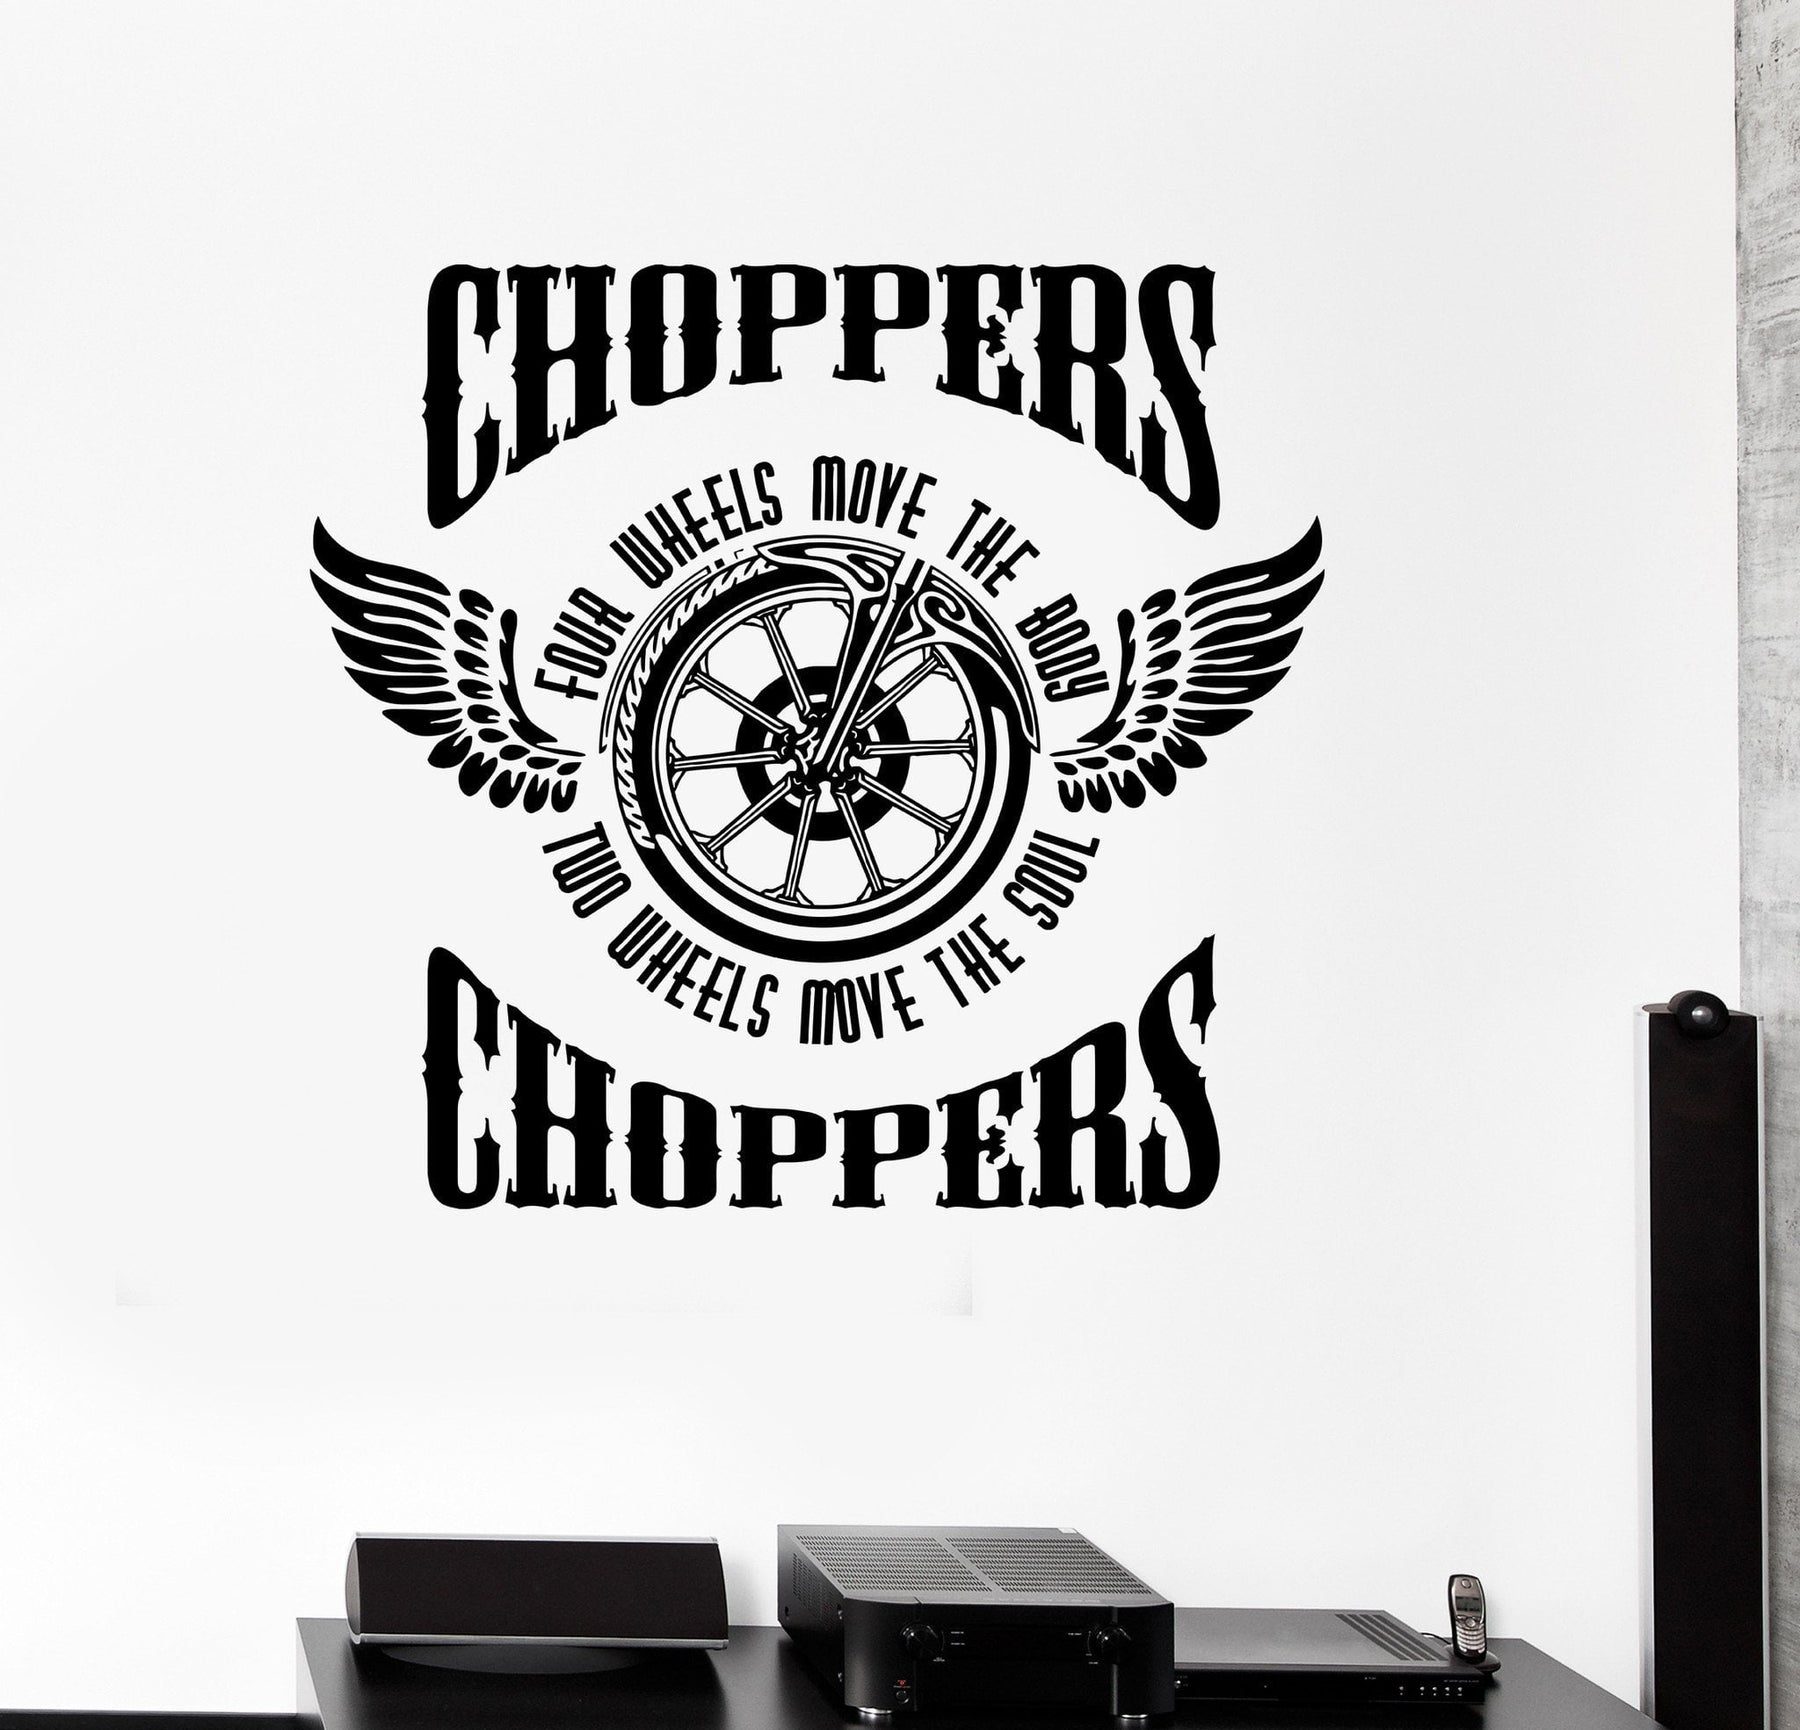 Wall sticker vinyl decal motorcycle fire bike chopper biker wings wheel unique gift ed488